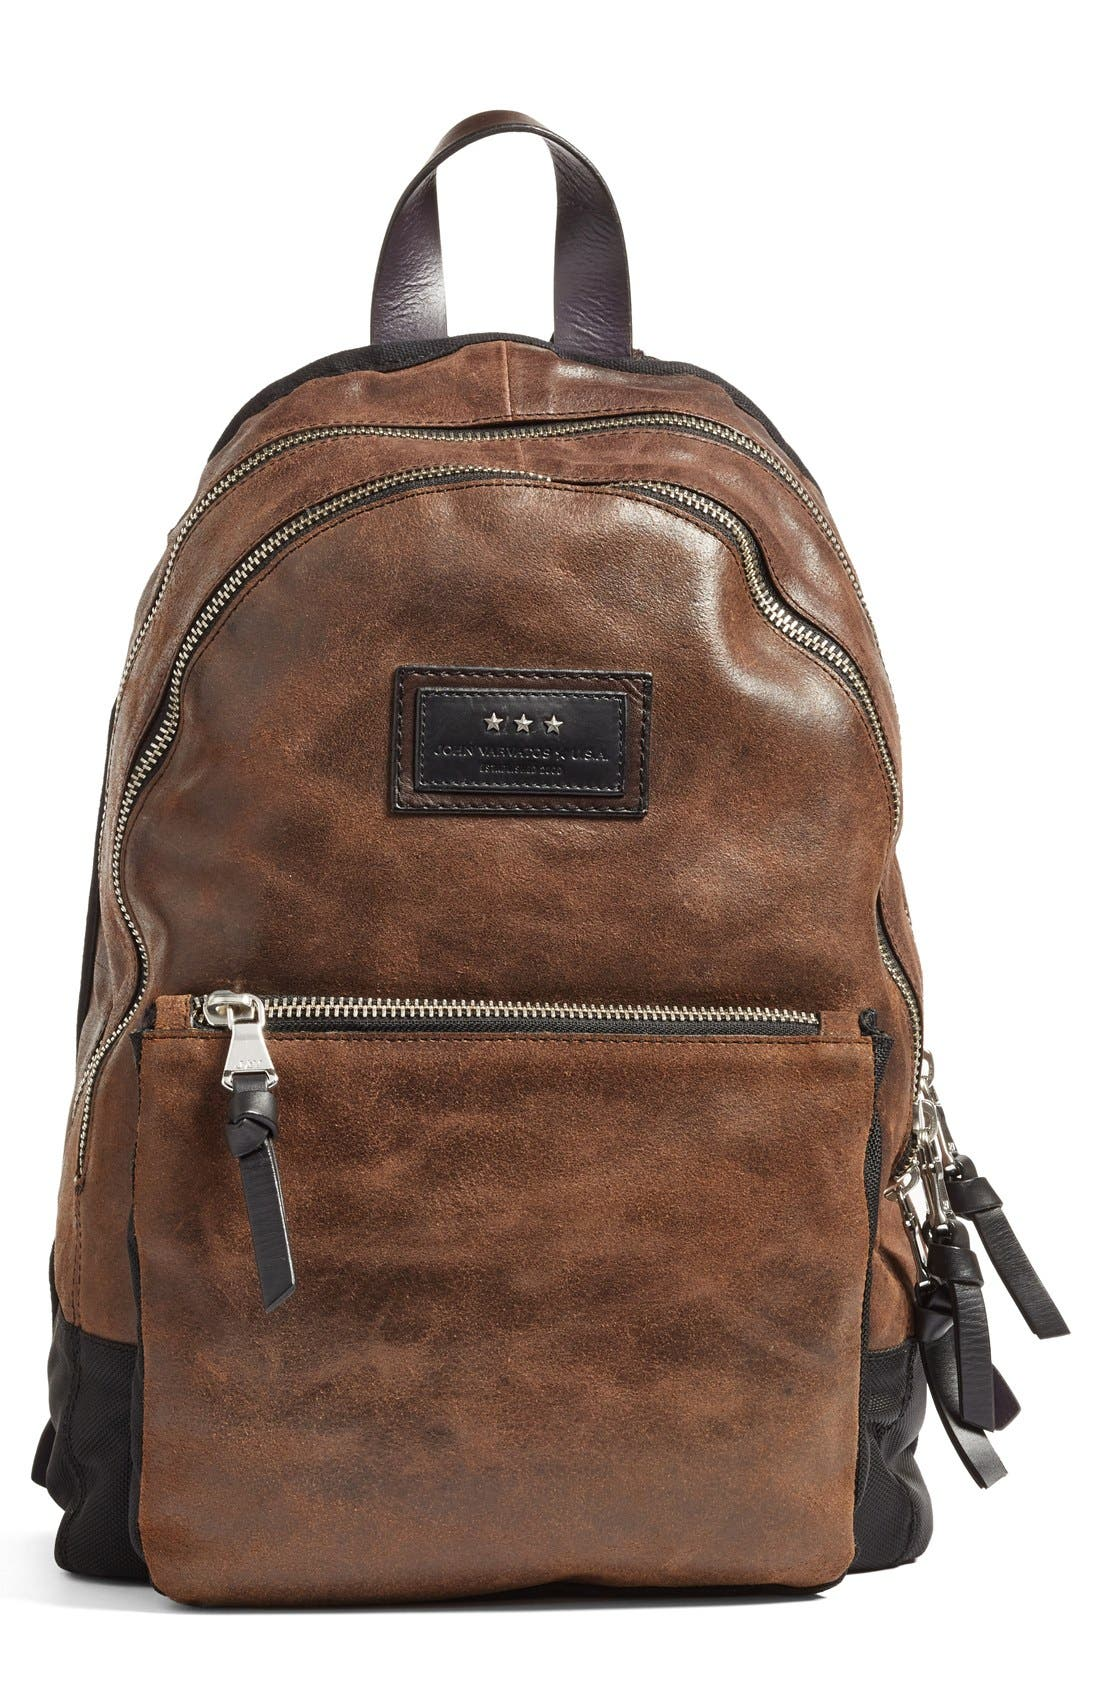 'Gibson' Suede Backpack,                             Main thumbnail 1, color,                             205